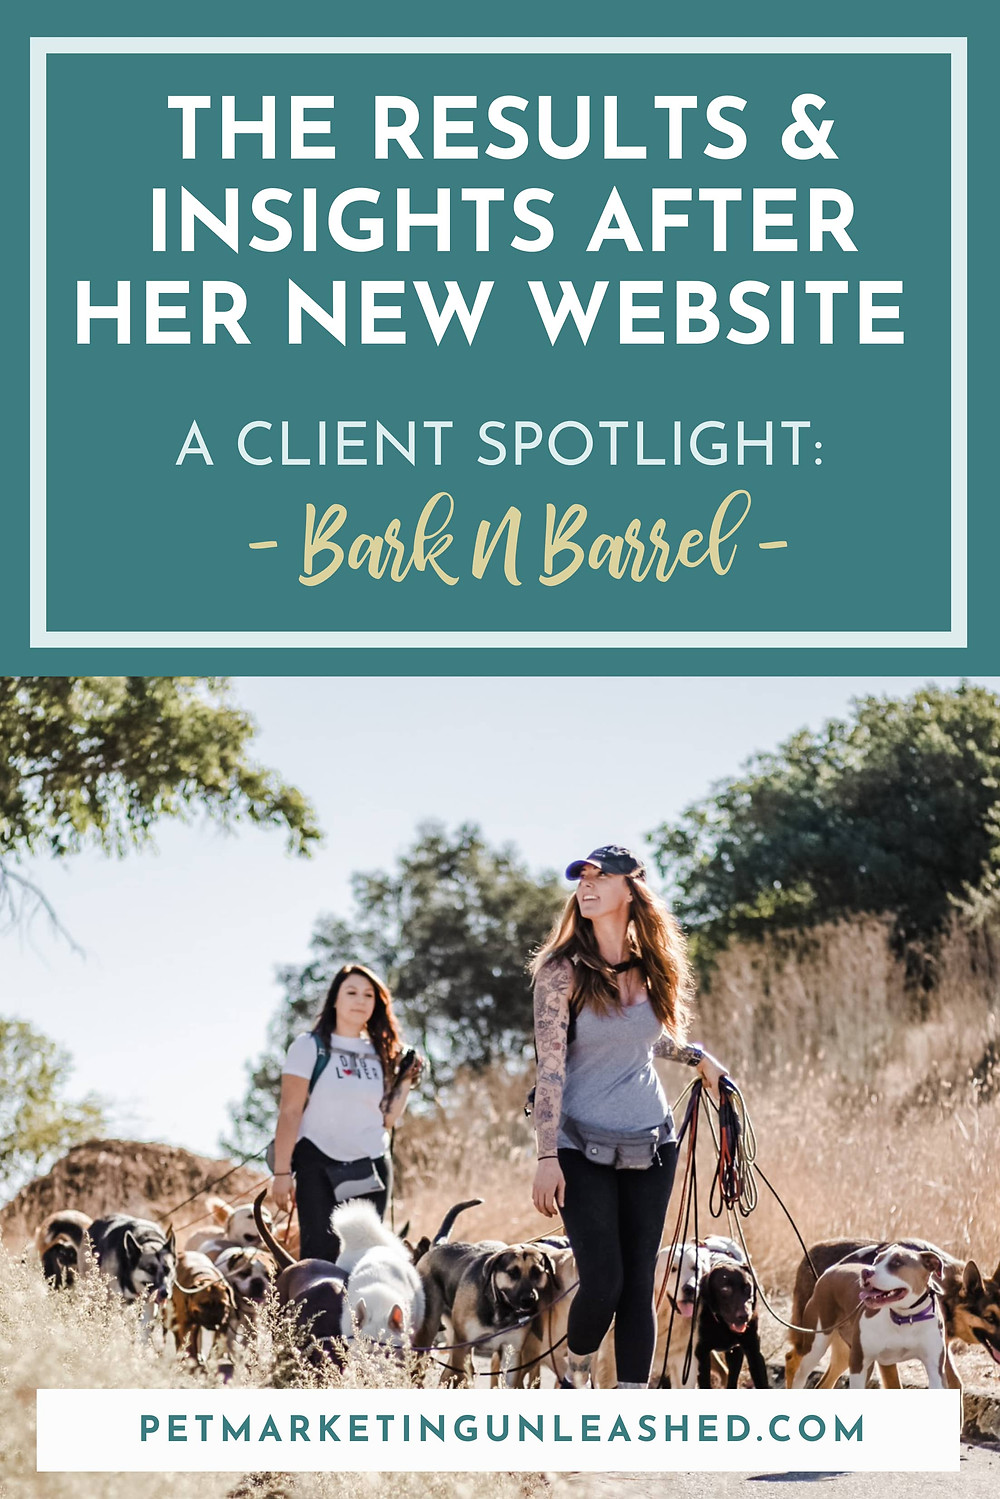 Client Spotlight with Bark N Barrel Dog Walking Dog Care Service Results and Insights After Her Custom Website Design with Pet Marketing Unleashed